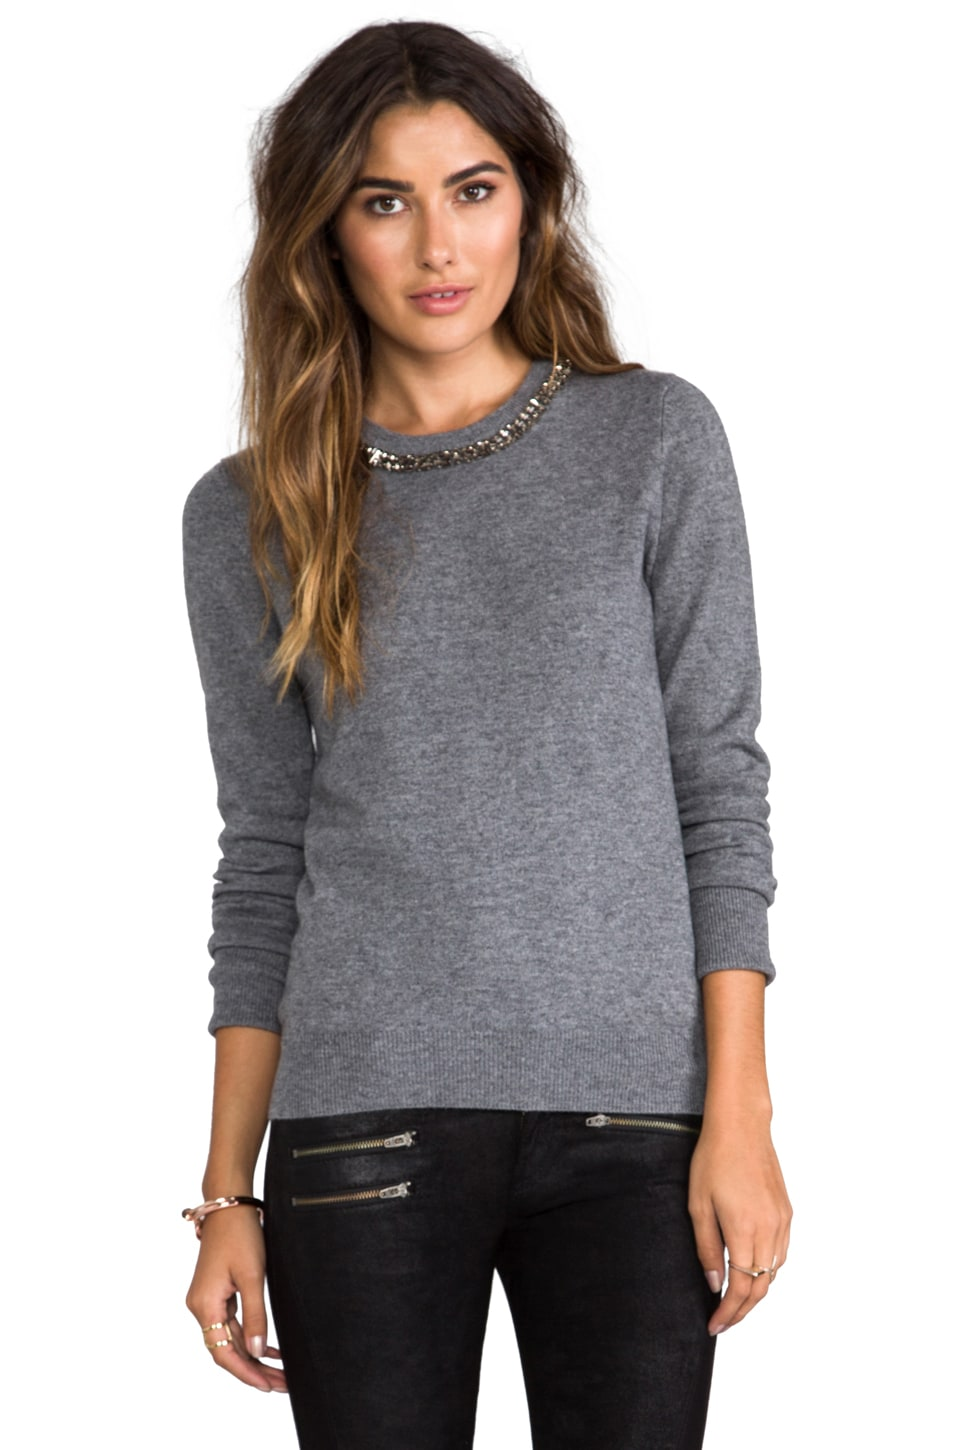 Equipment Shane Pullover w/ Embellished Neck in Heather Grey